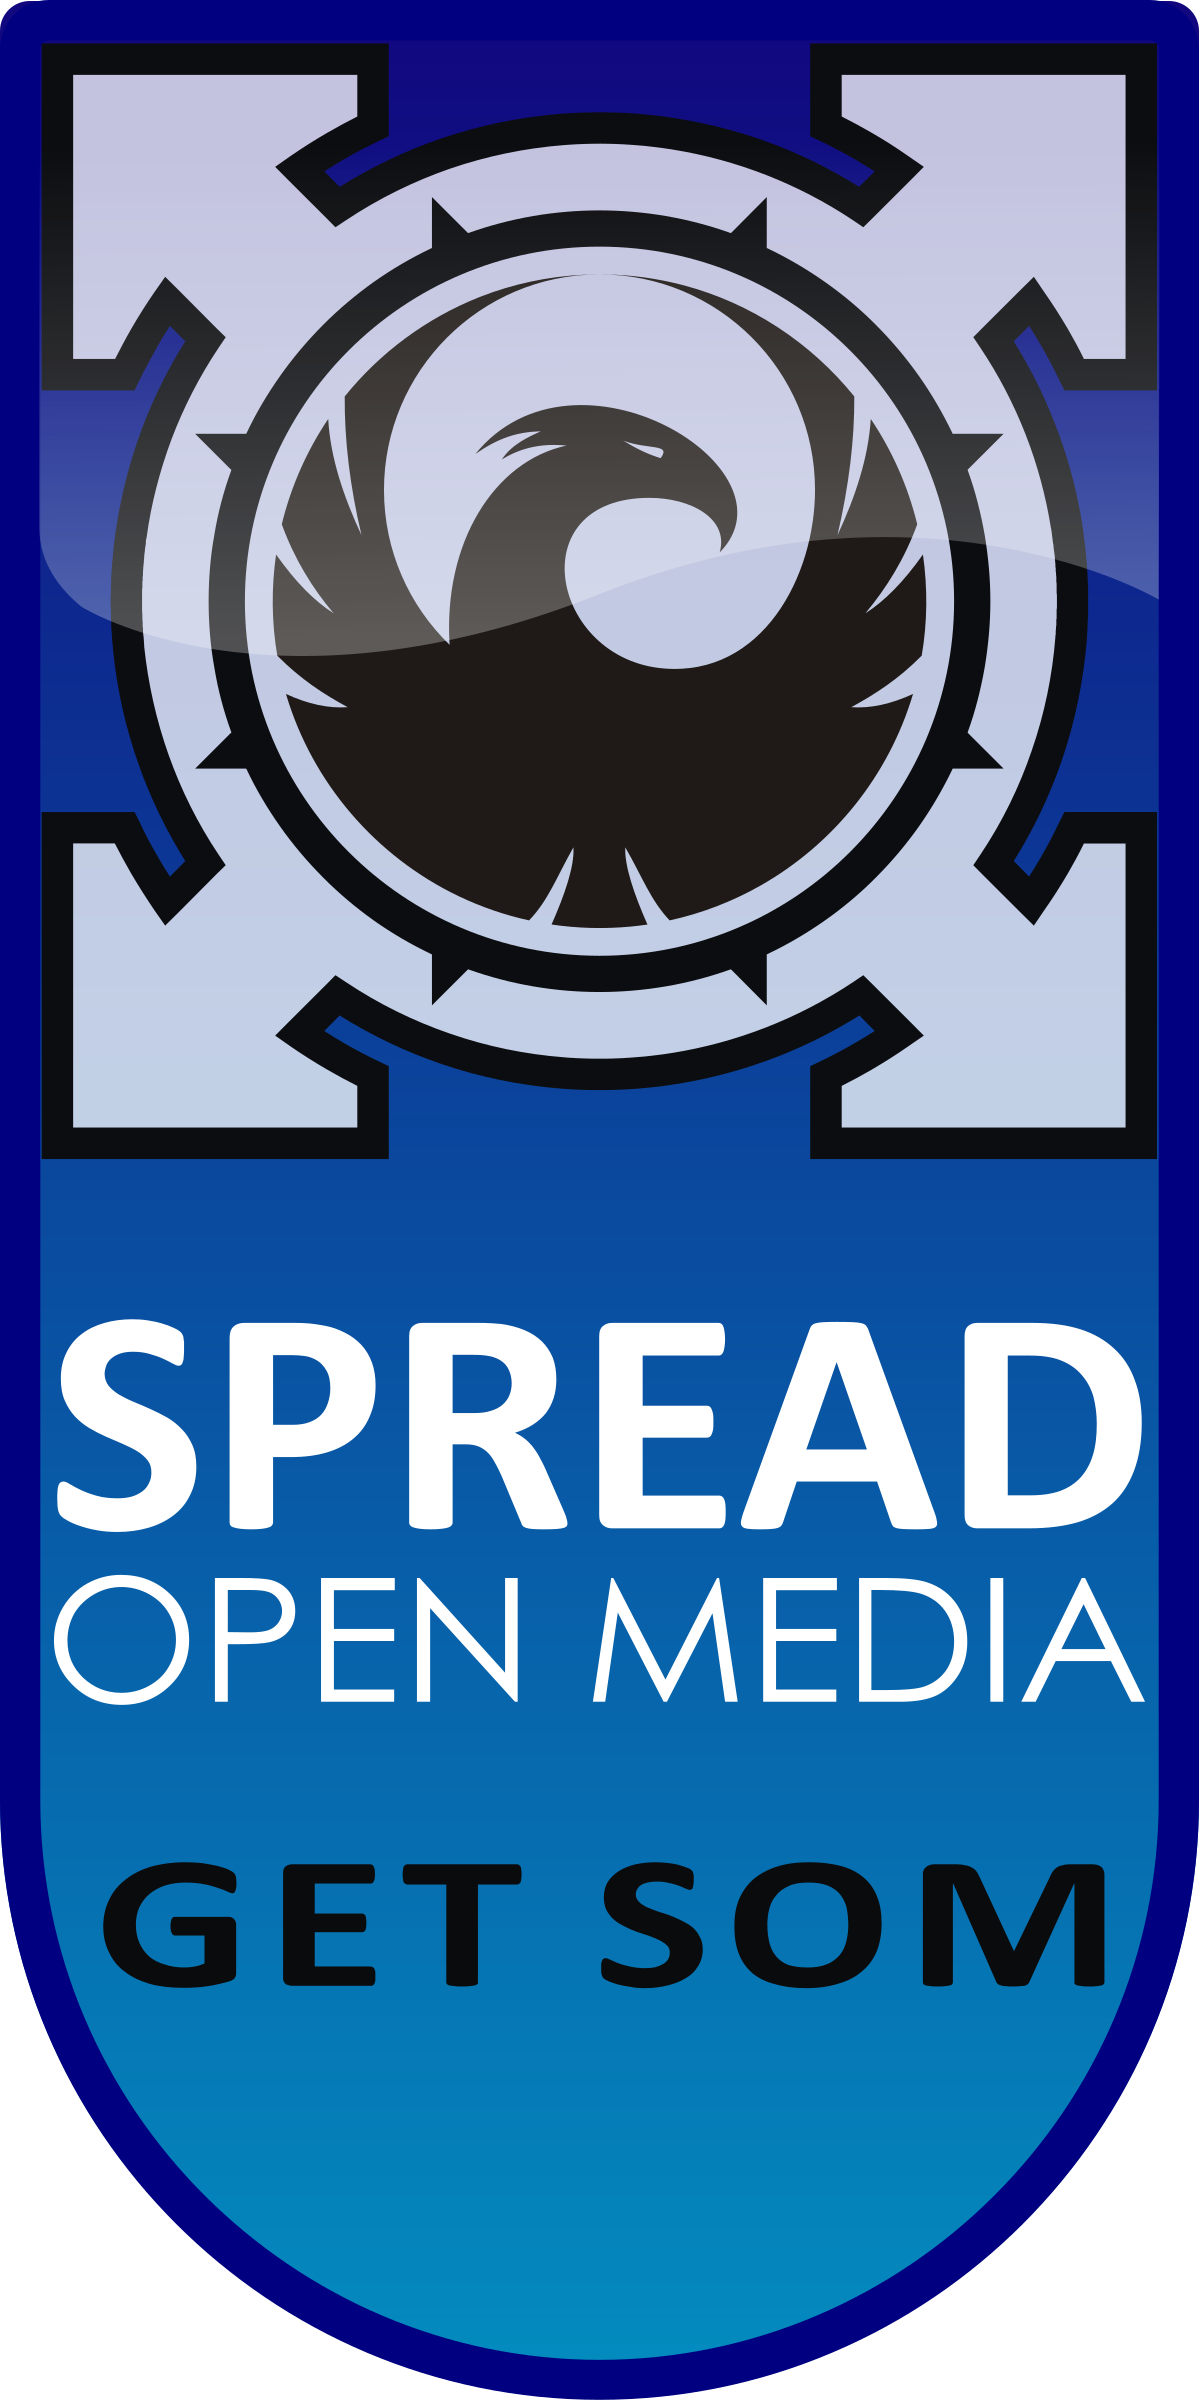 Get SOM - Spread Open Media by mabroox